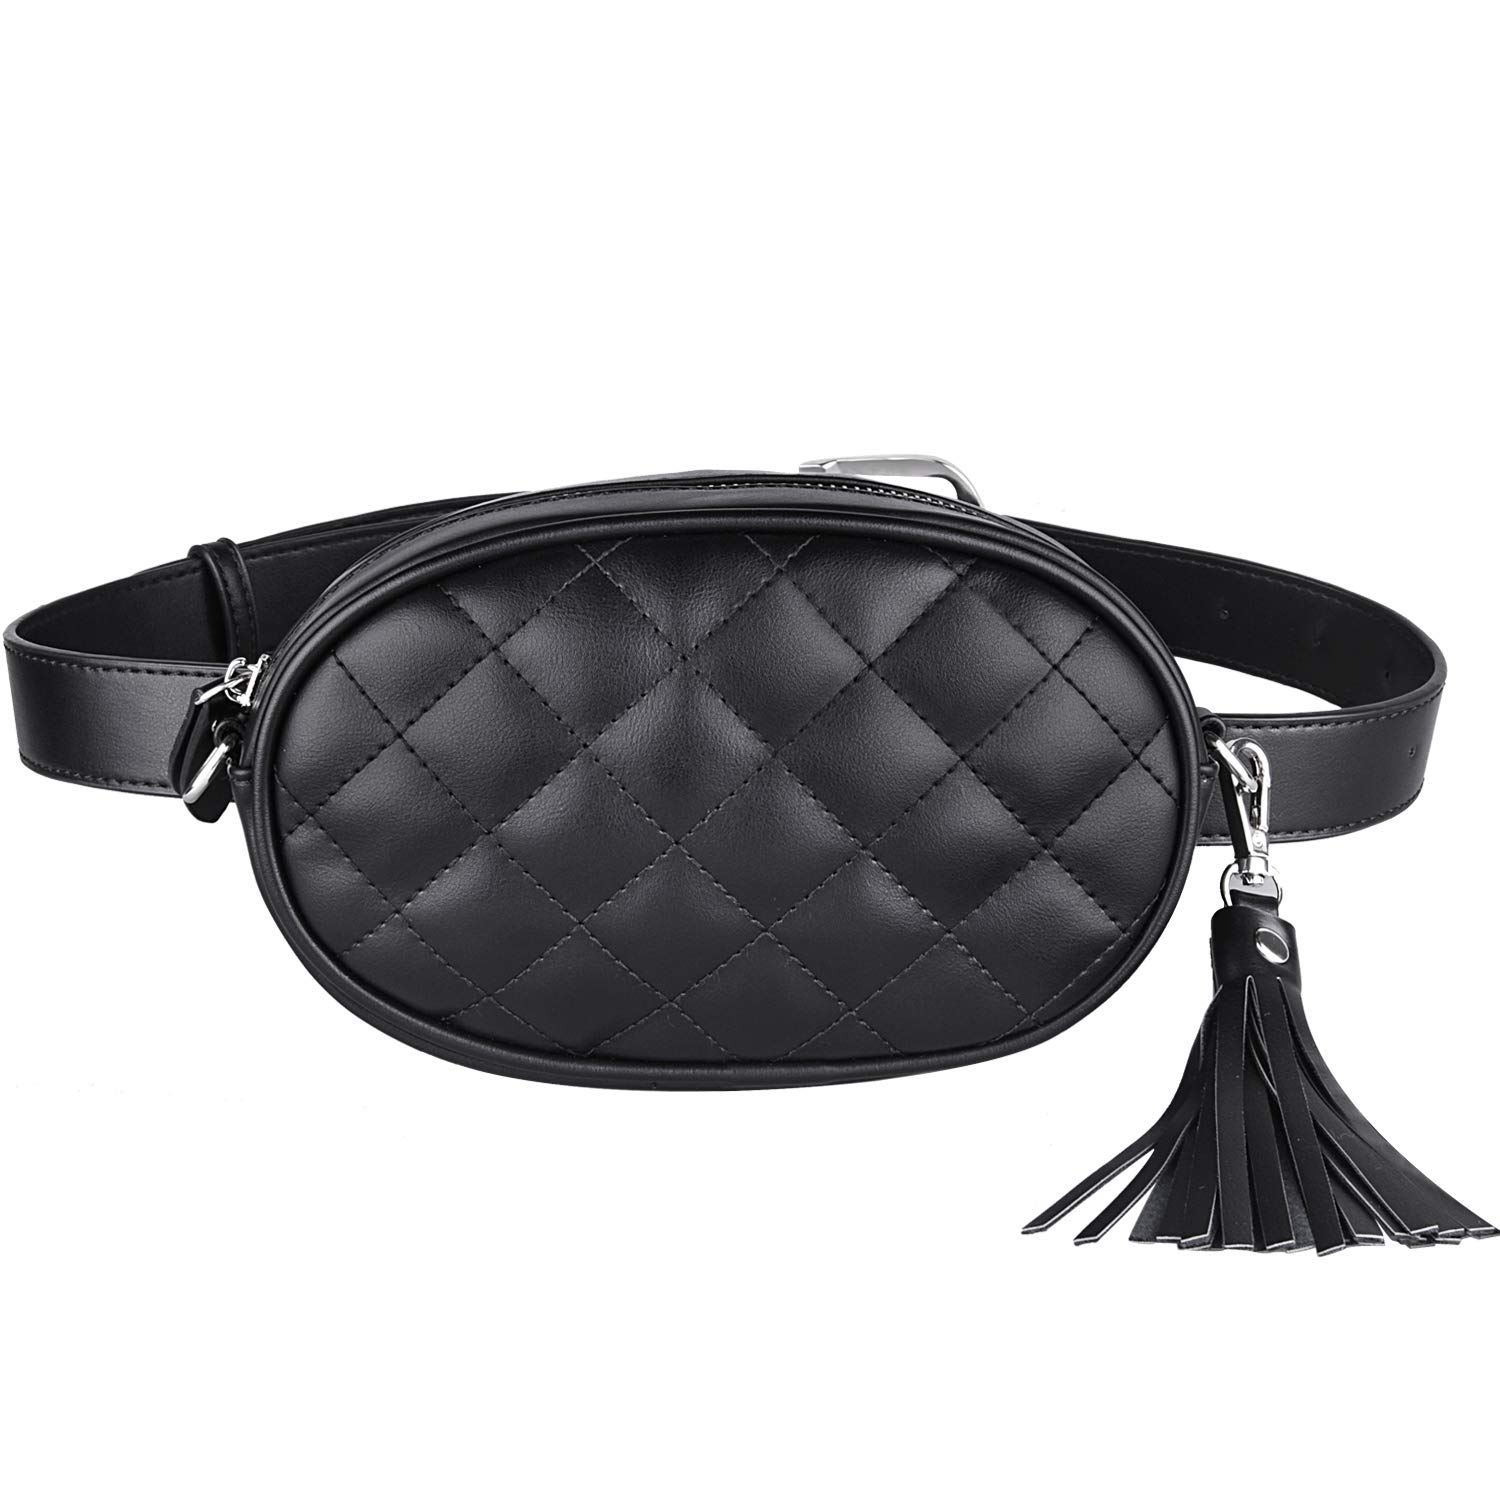 Duufin Women Fanny Pack Quilted Leather Waist Bag Tassel Bag Travel Cell Phone Bum Bag With Two Belts